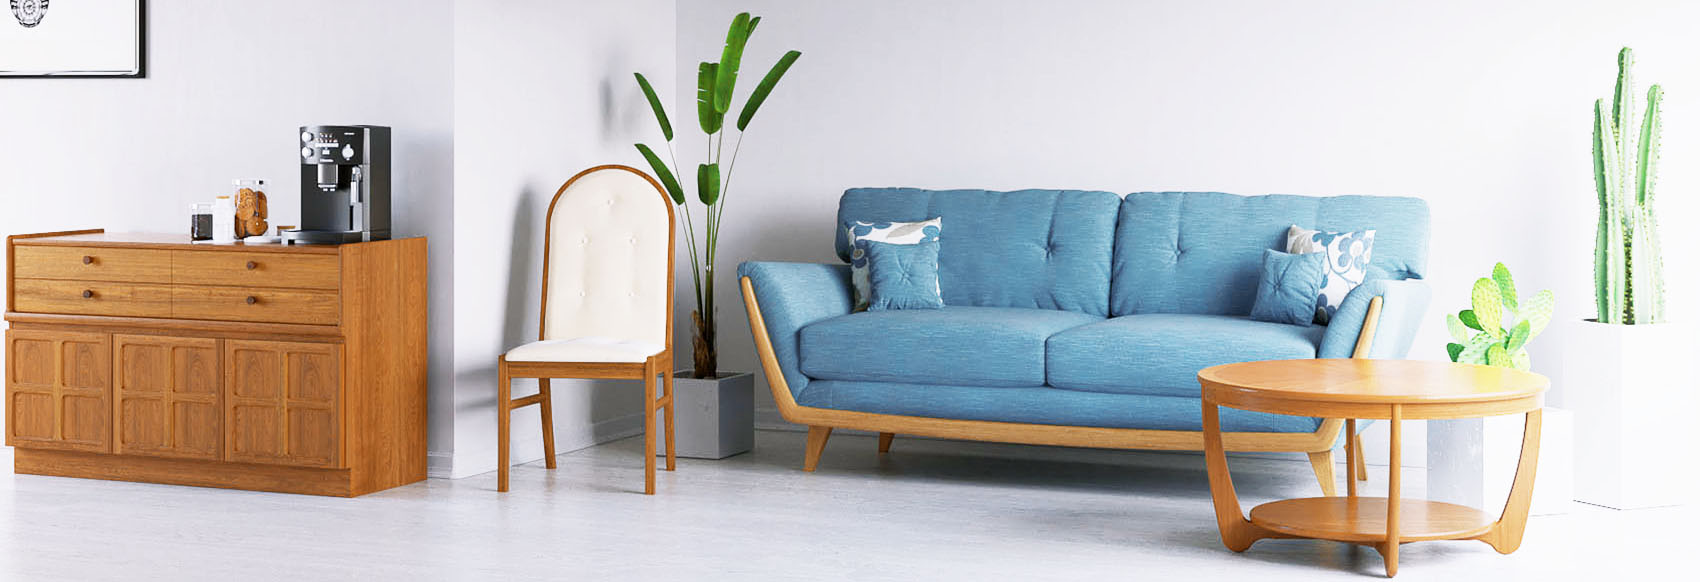 Upholstery-And-Decor-Services-in-Oudtshoorn-and-Garden-Route